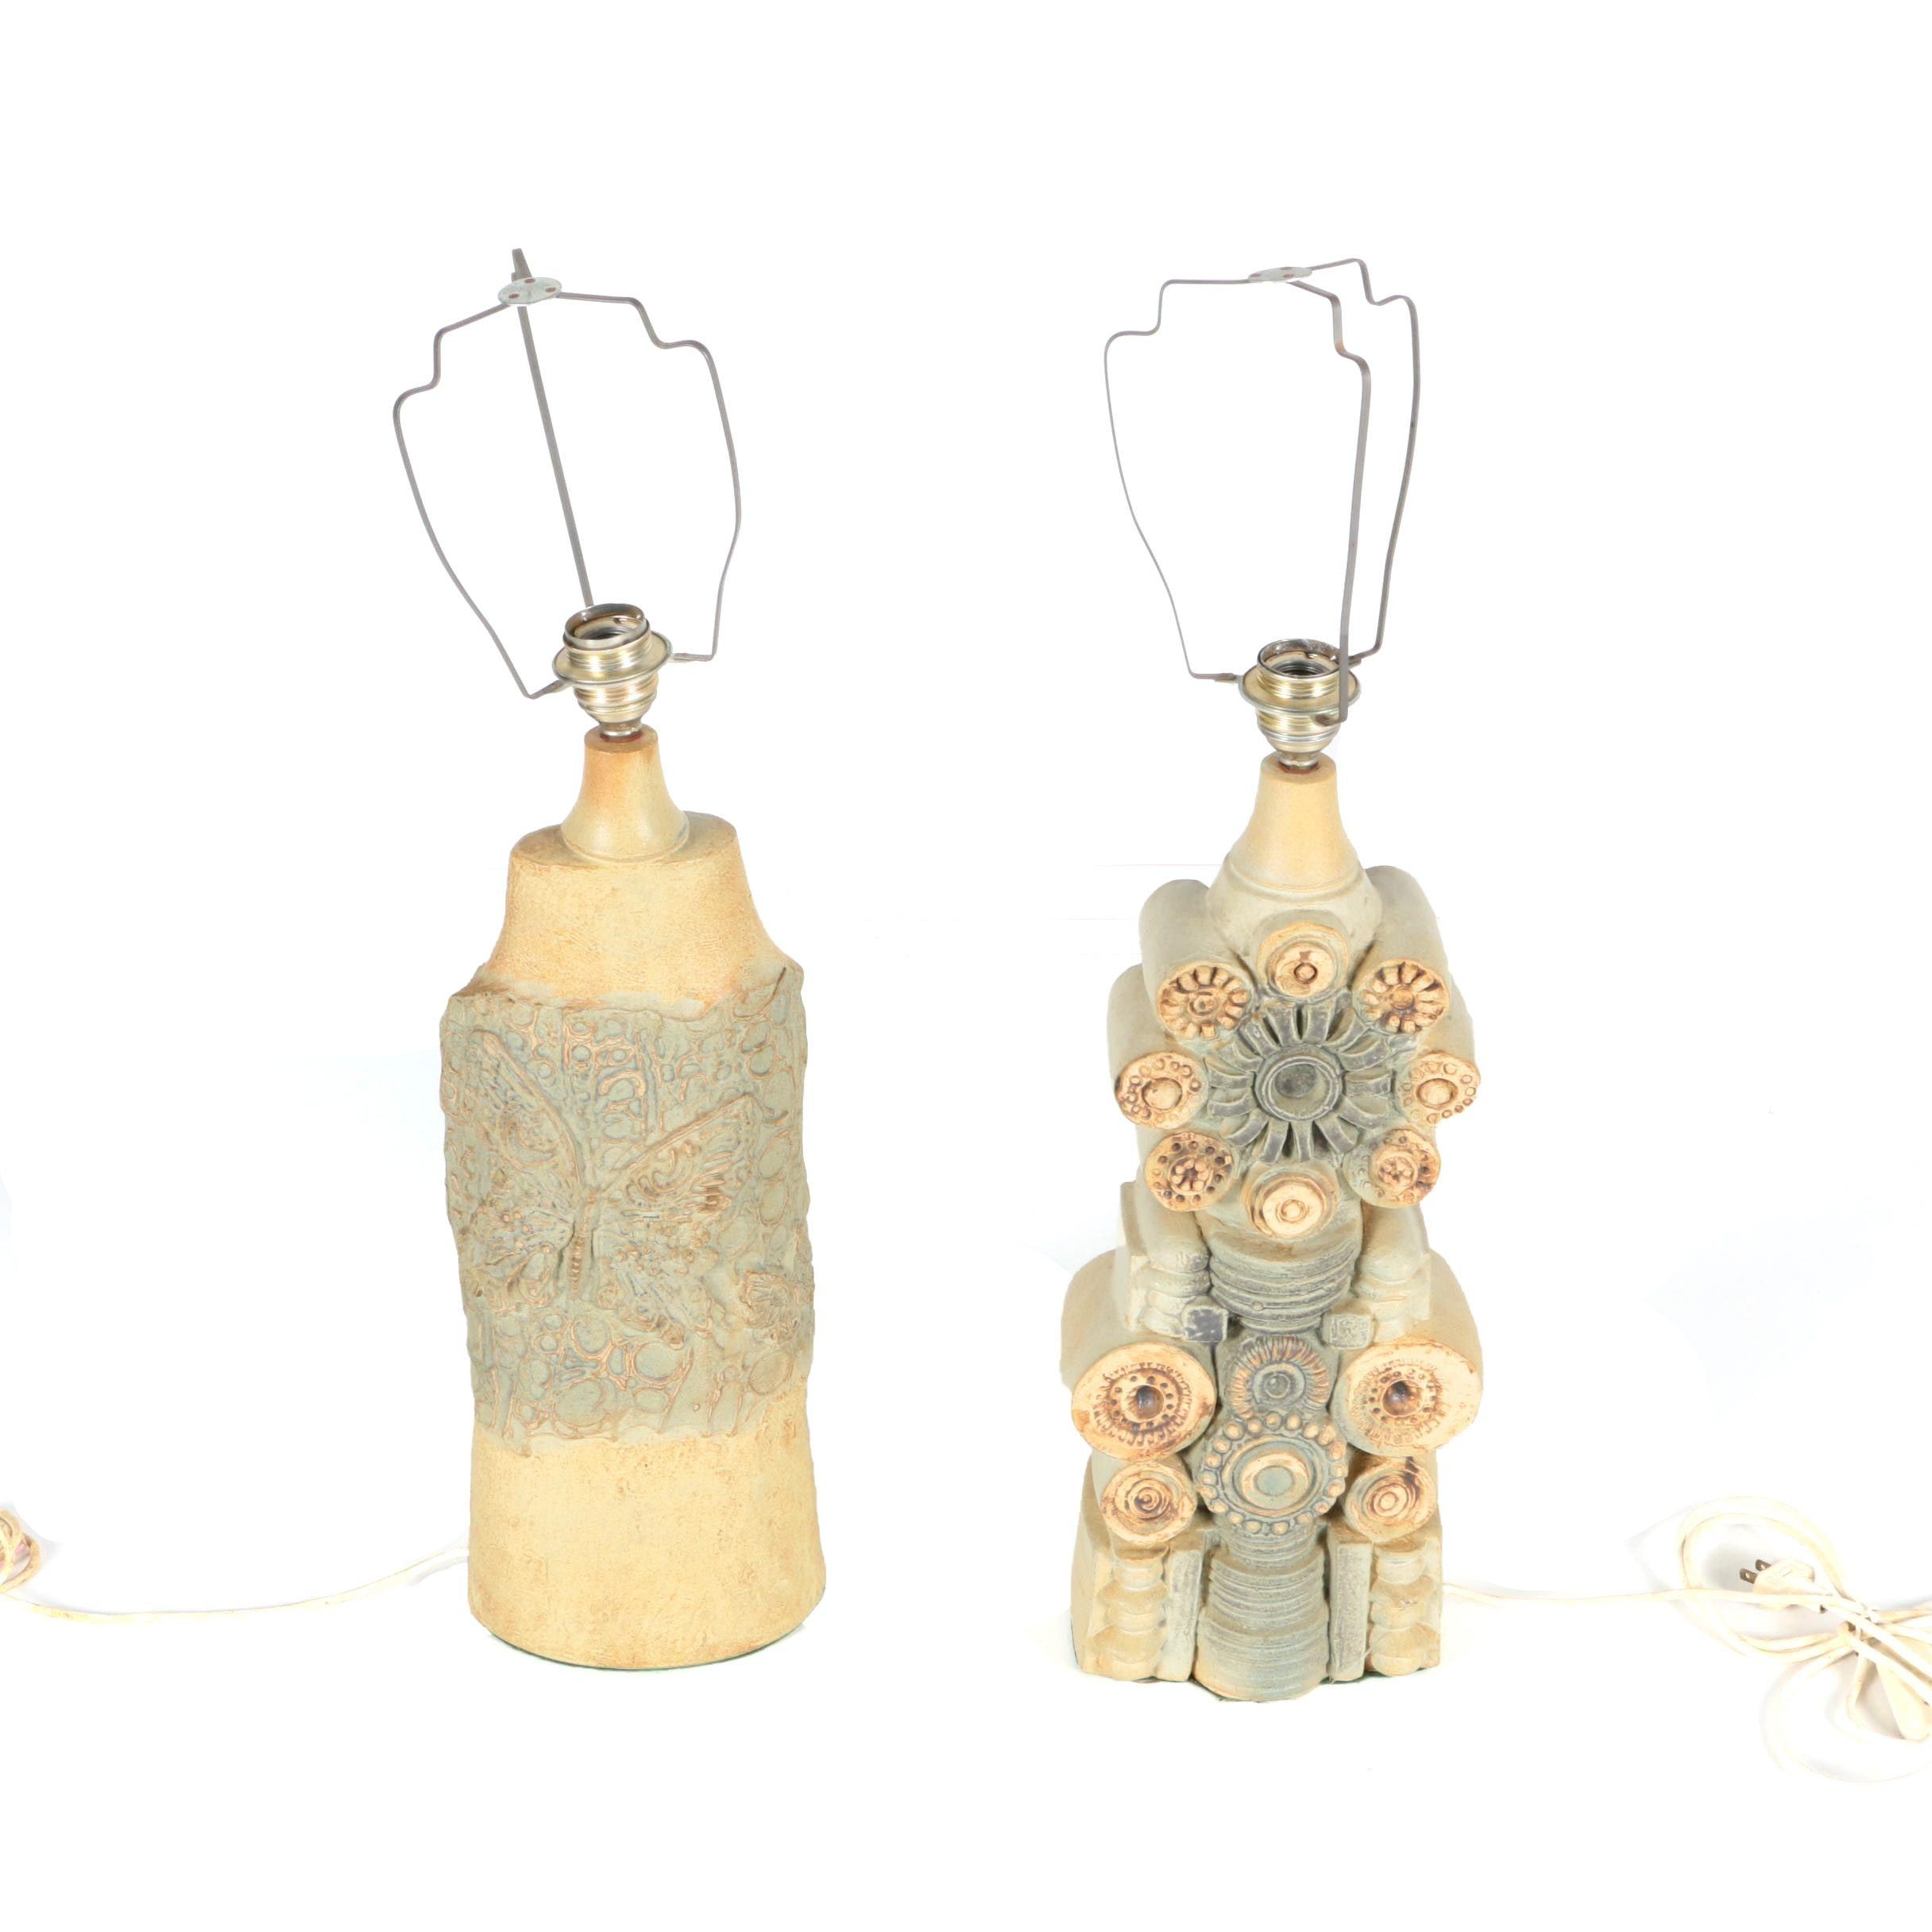 Thrown and Handbuilt Stoneware Table Lamps